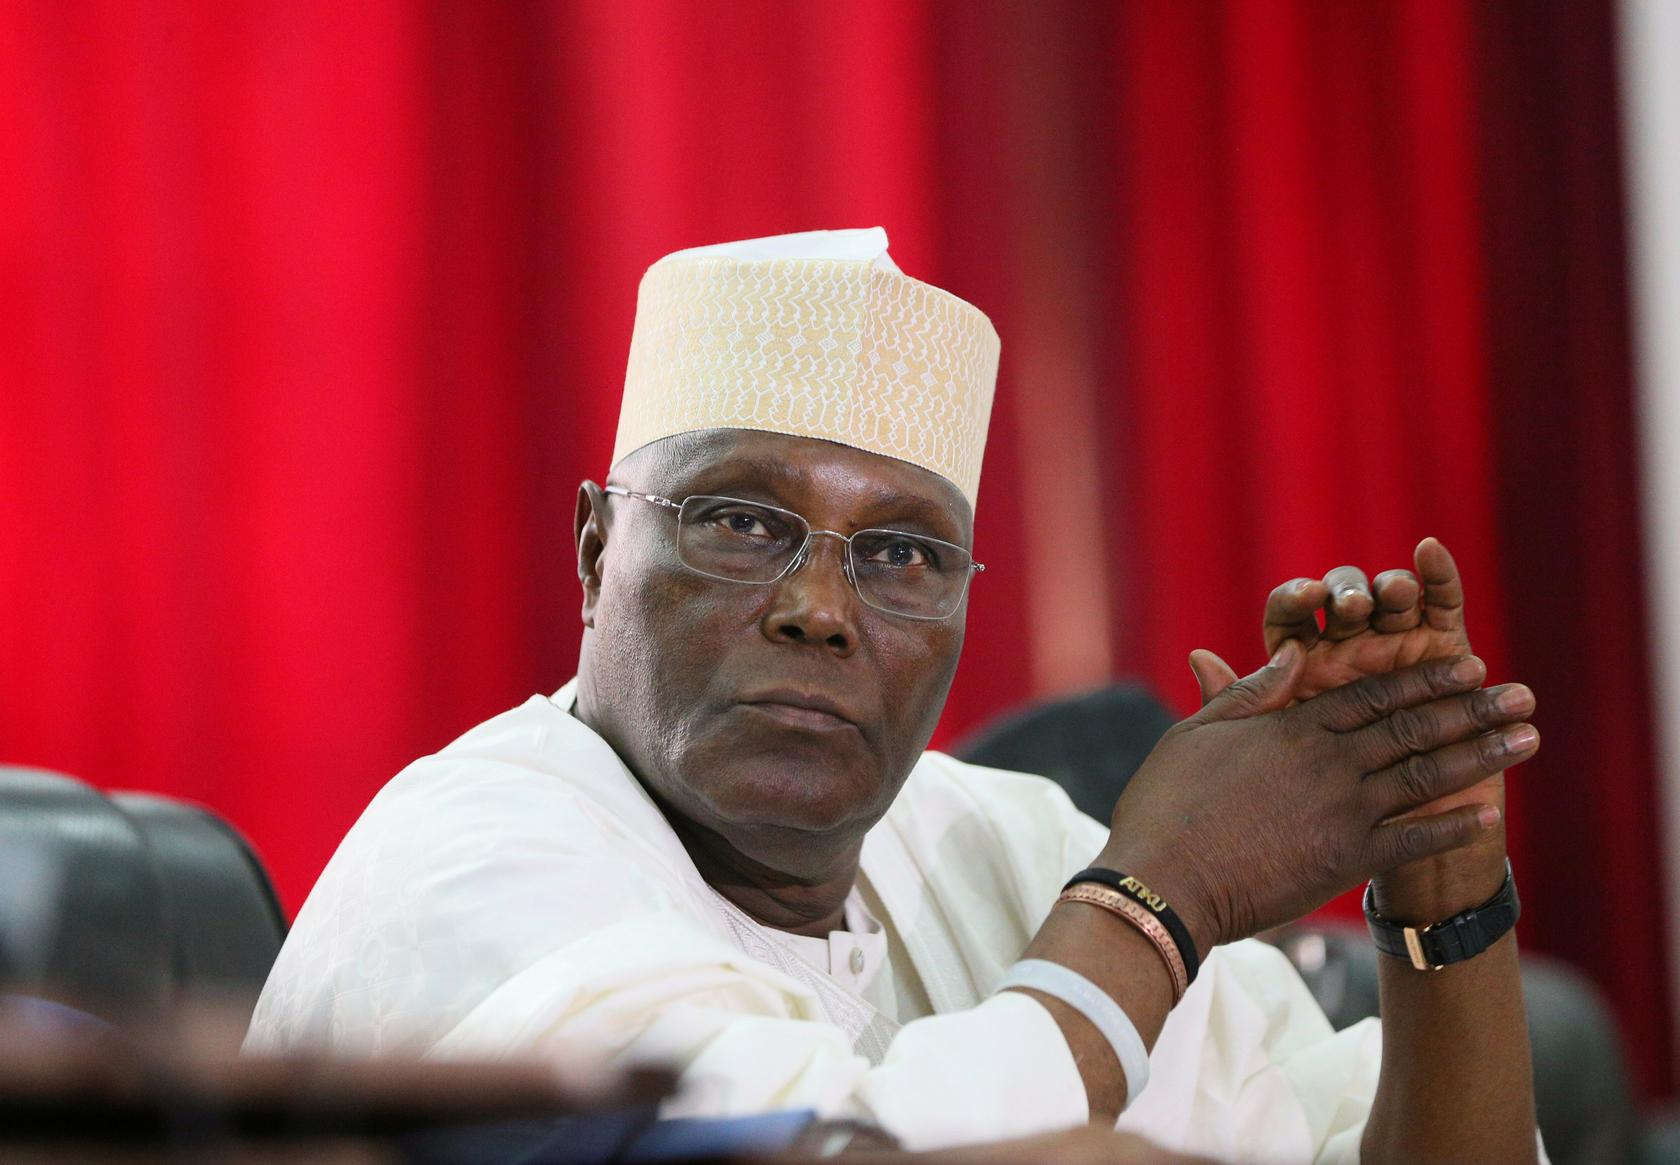 Photo of Atiku, Saraki to pay Lagos trader N5m over unauthorized use of picture on campaign billboard